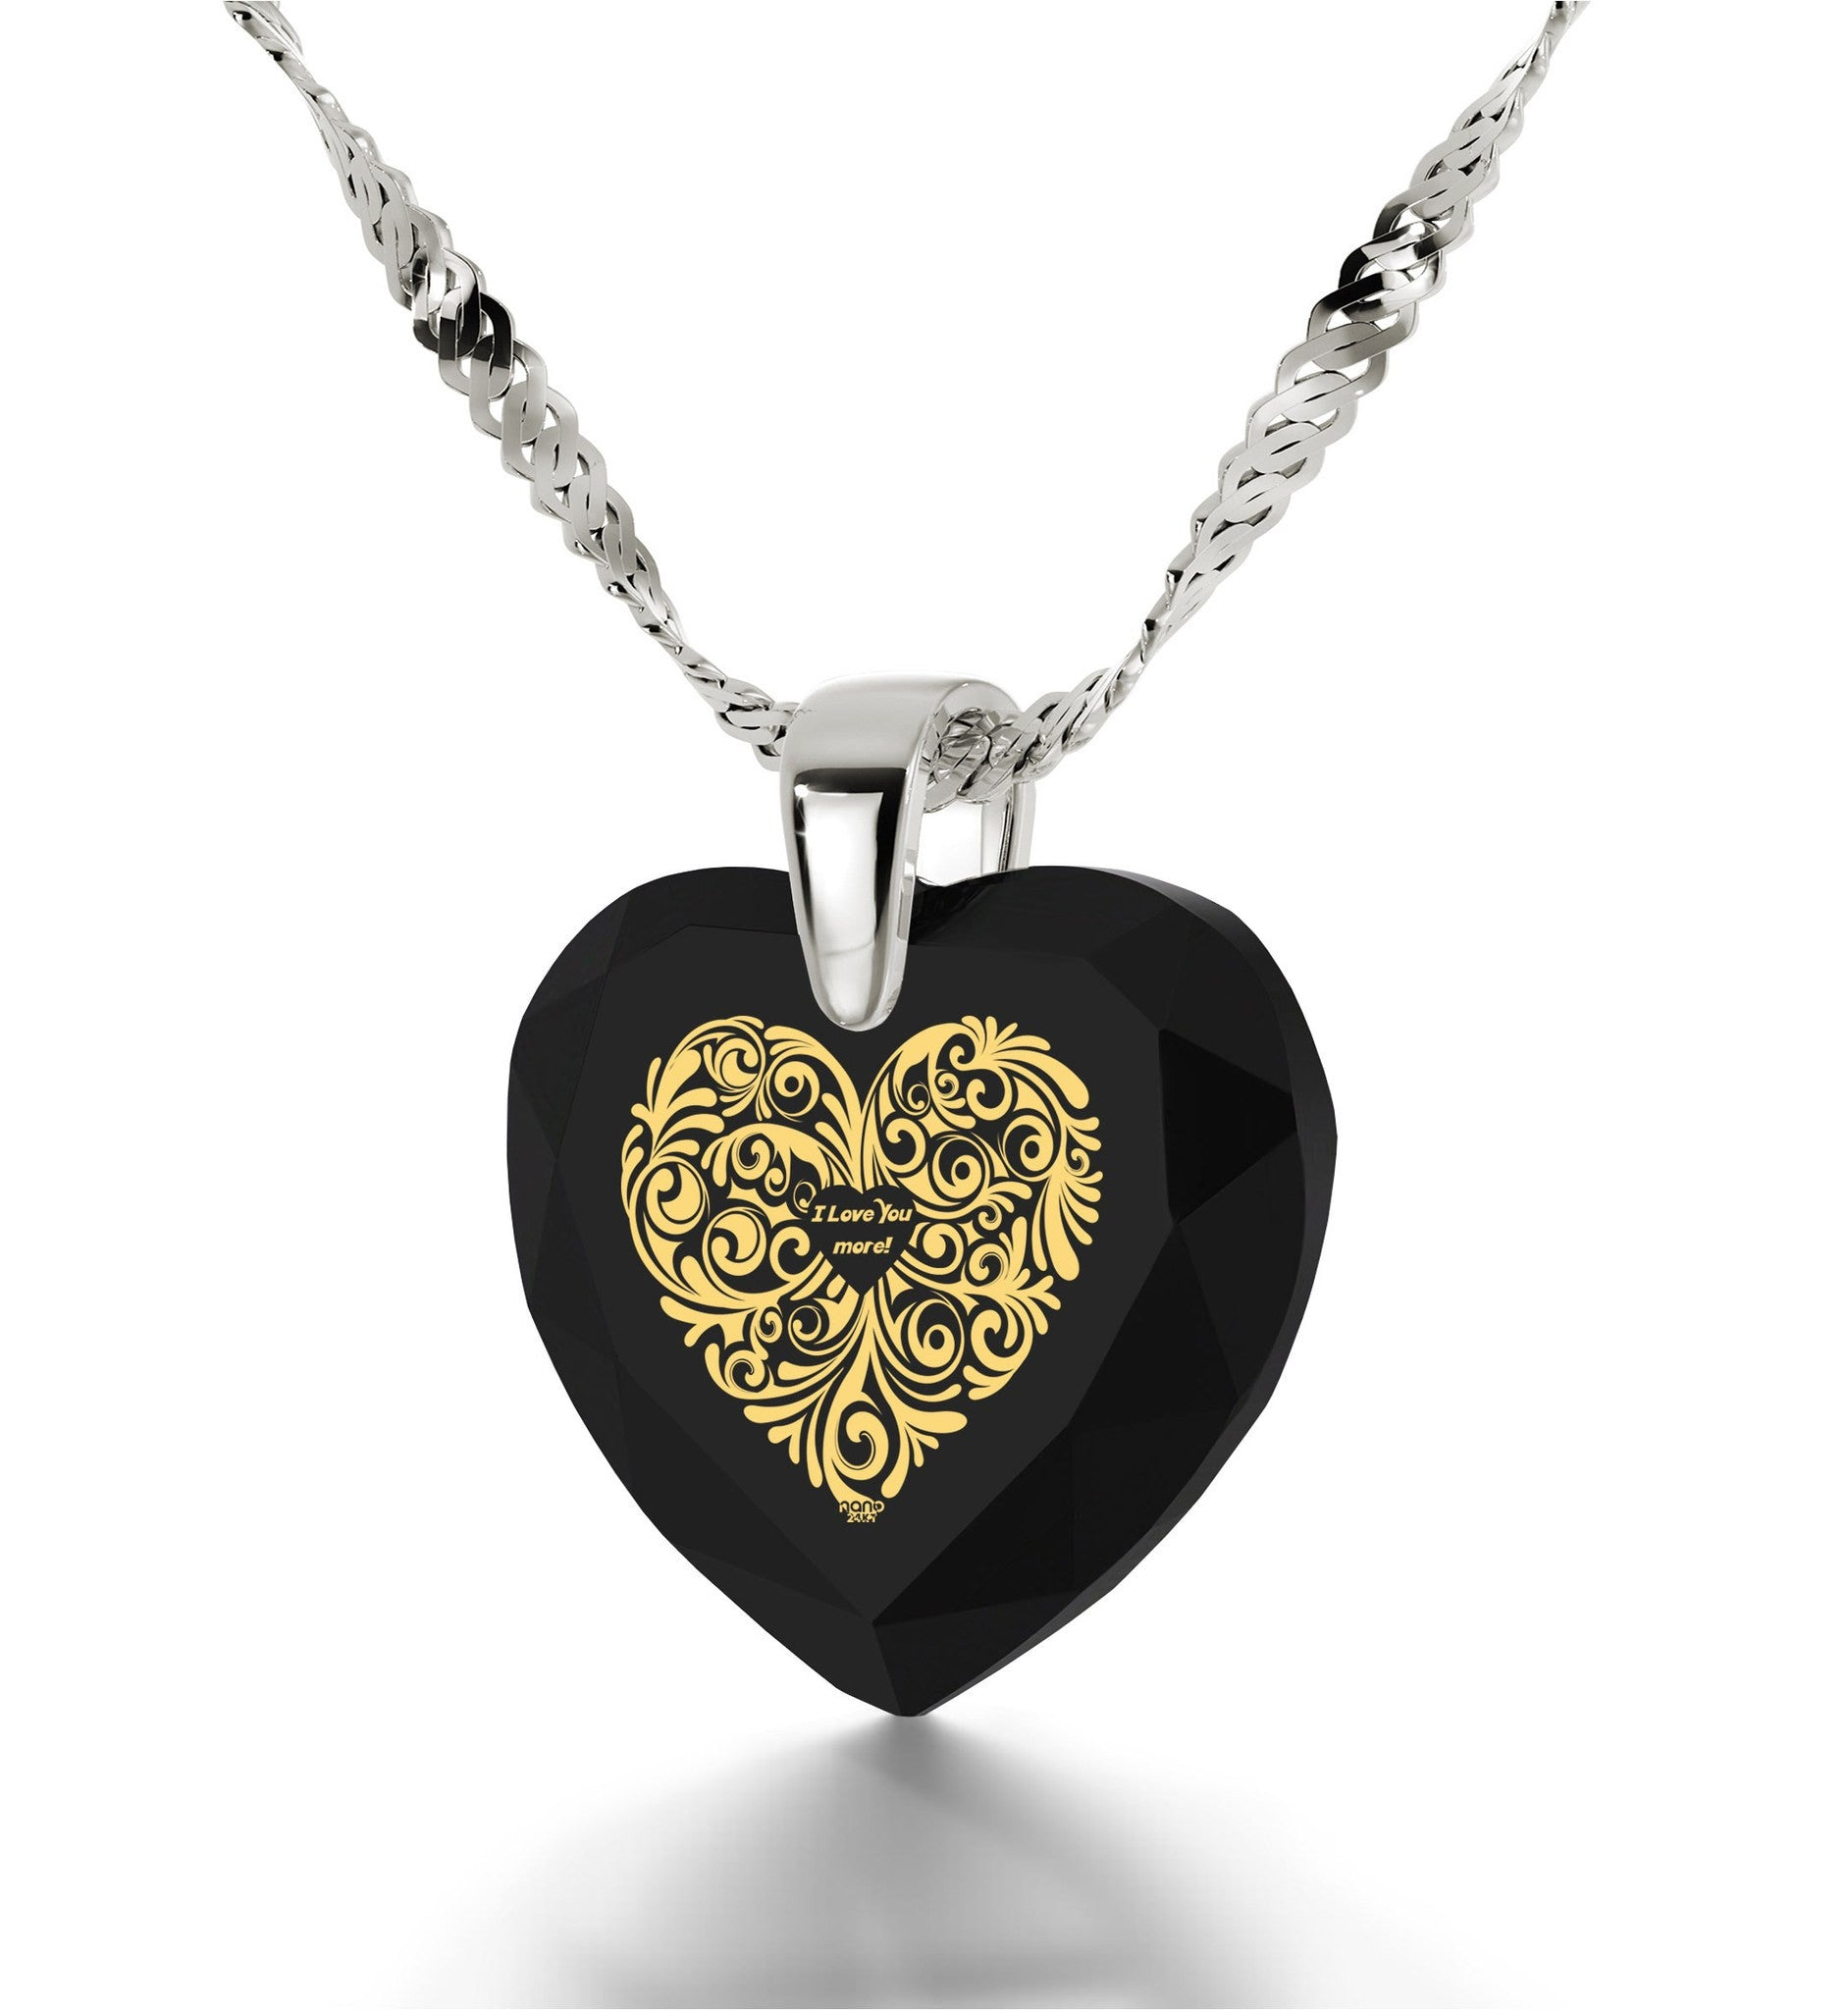 """Good Valentine Gifts for Girlfriend,""I Love You More"" 24k Engraved Jewelry, Christmas Ideas for Women, Nano """